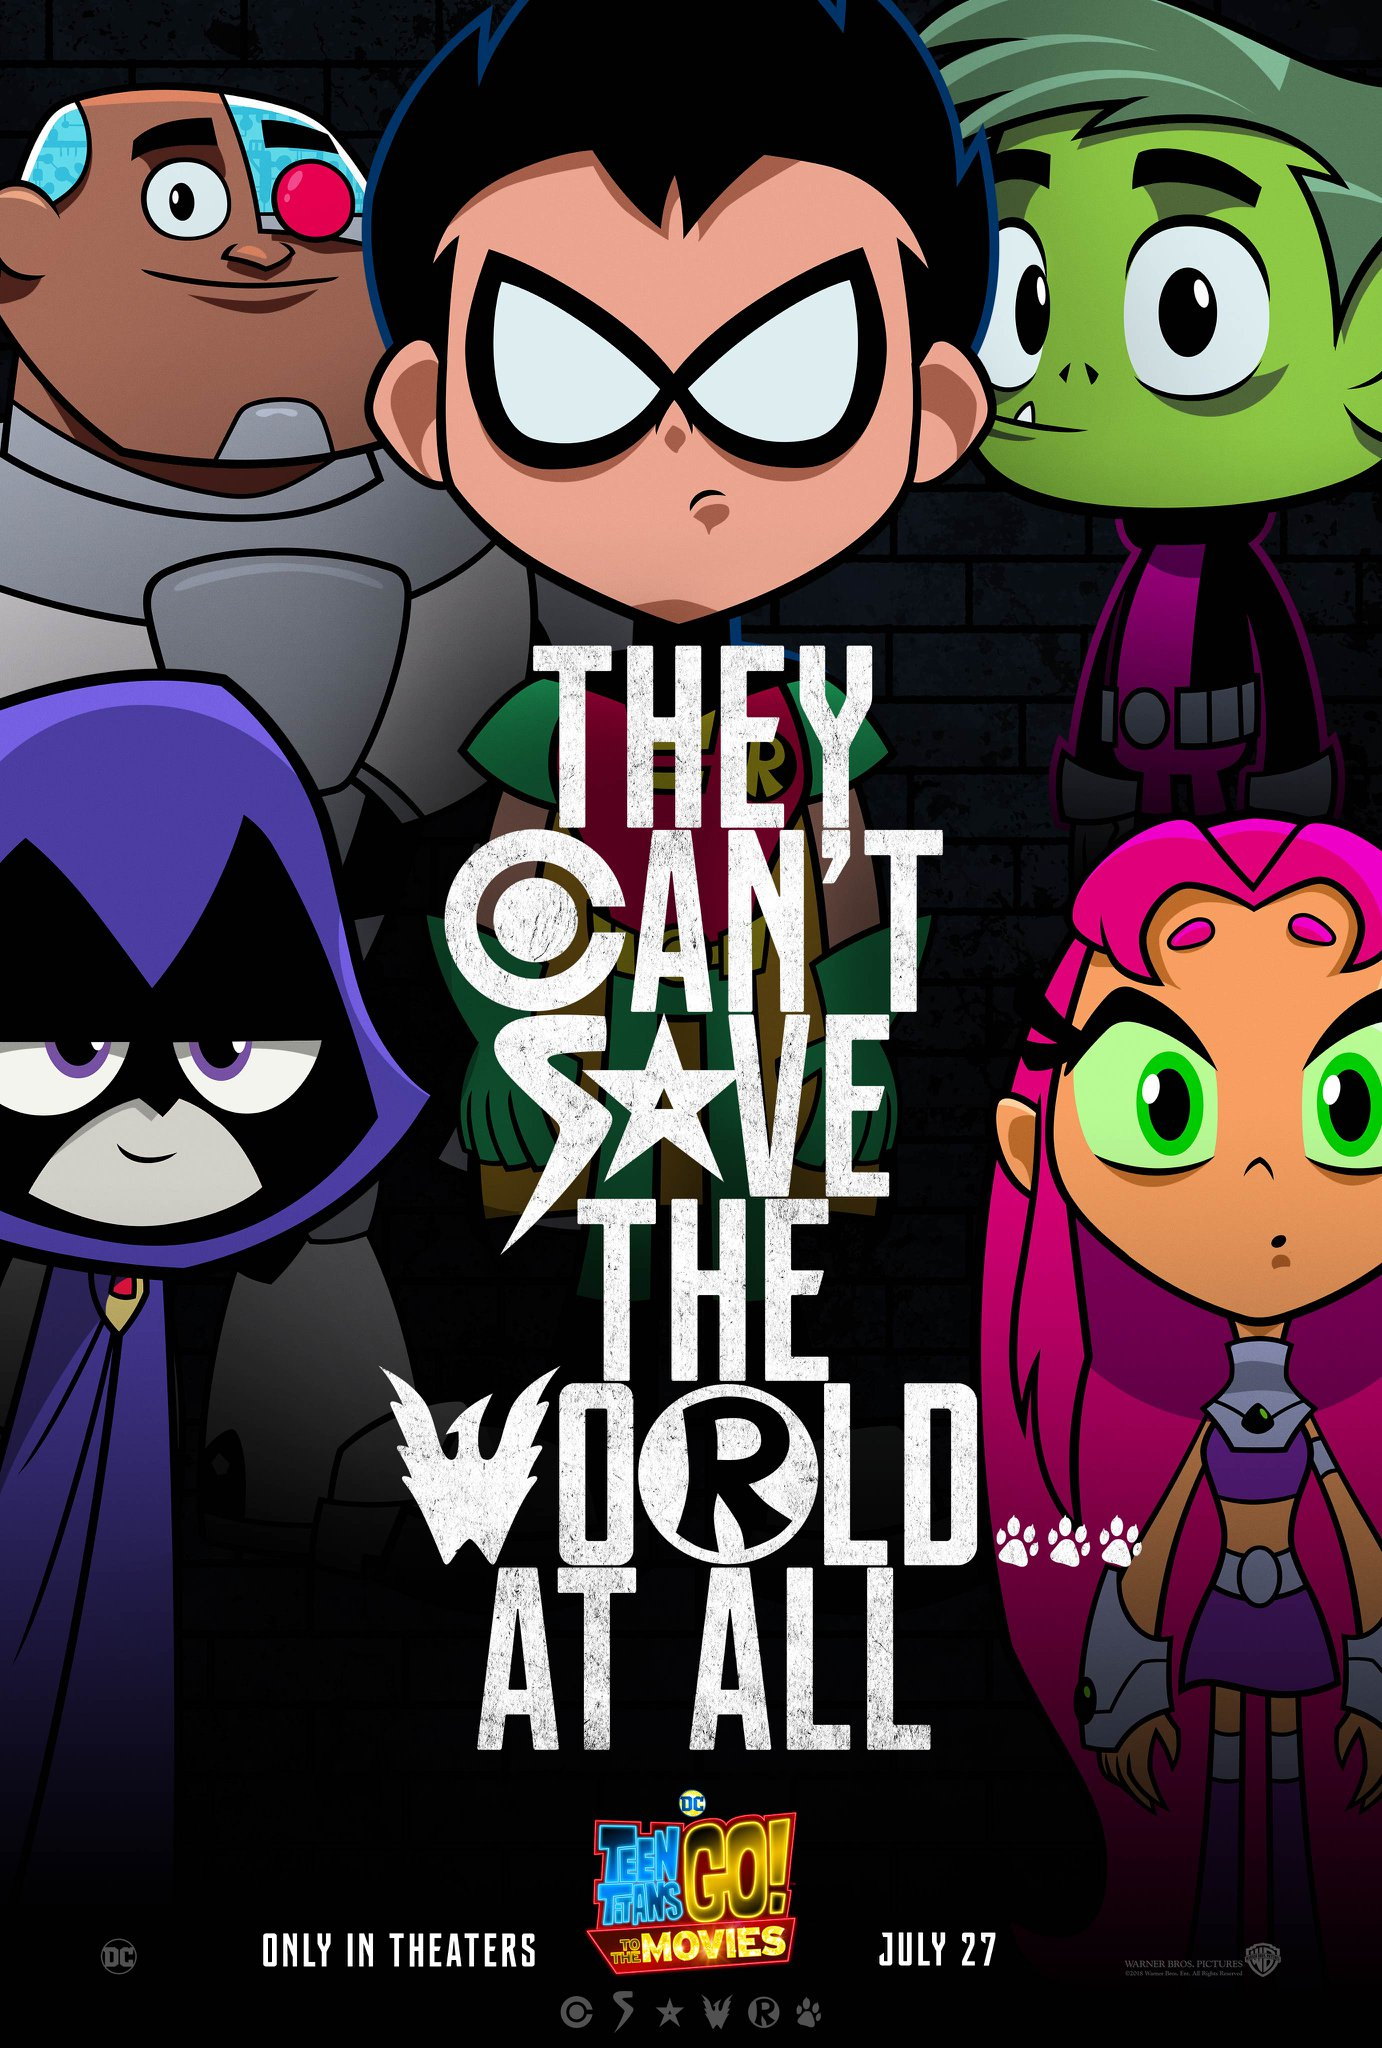 Teen Titans GO! To The Movies Poster Parodies Justice League